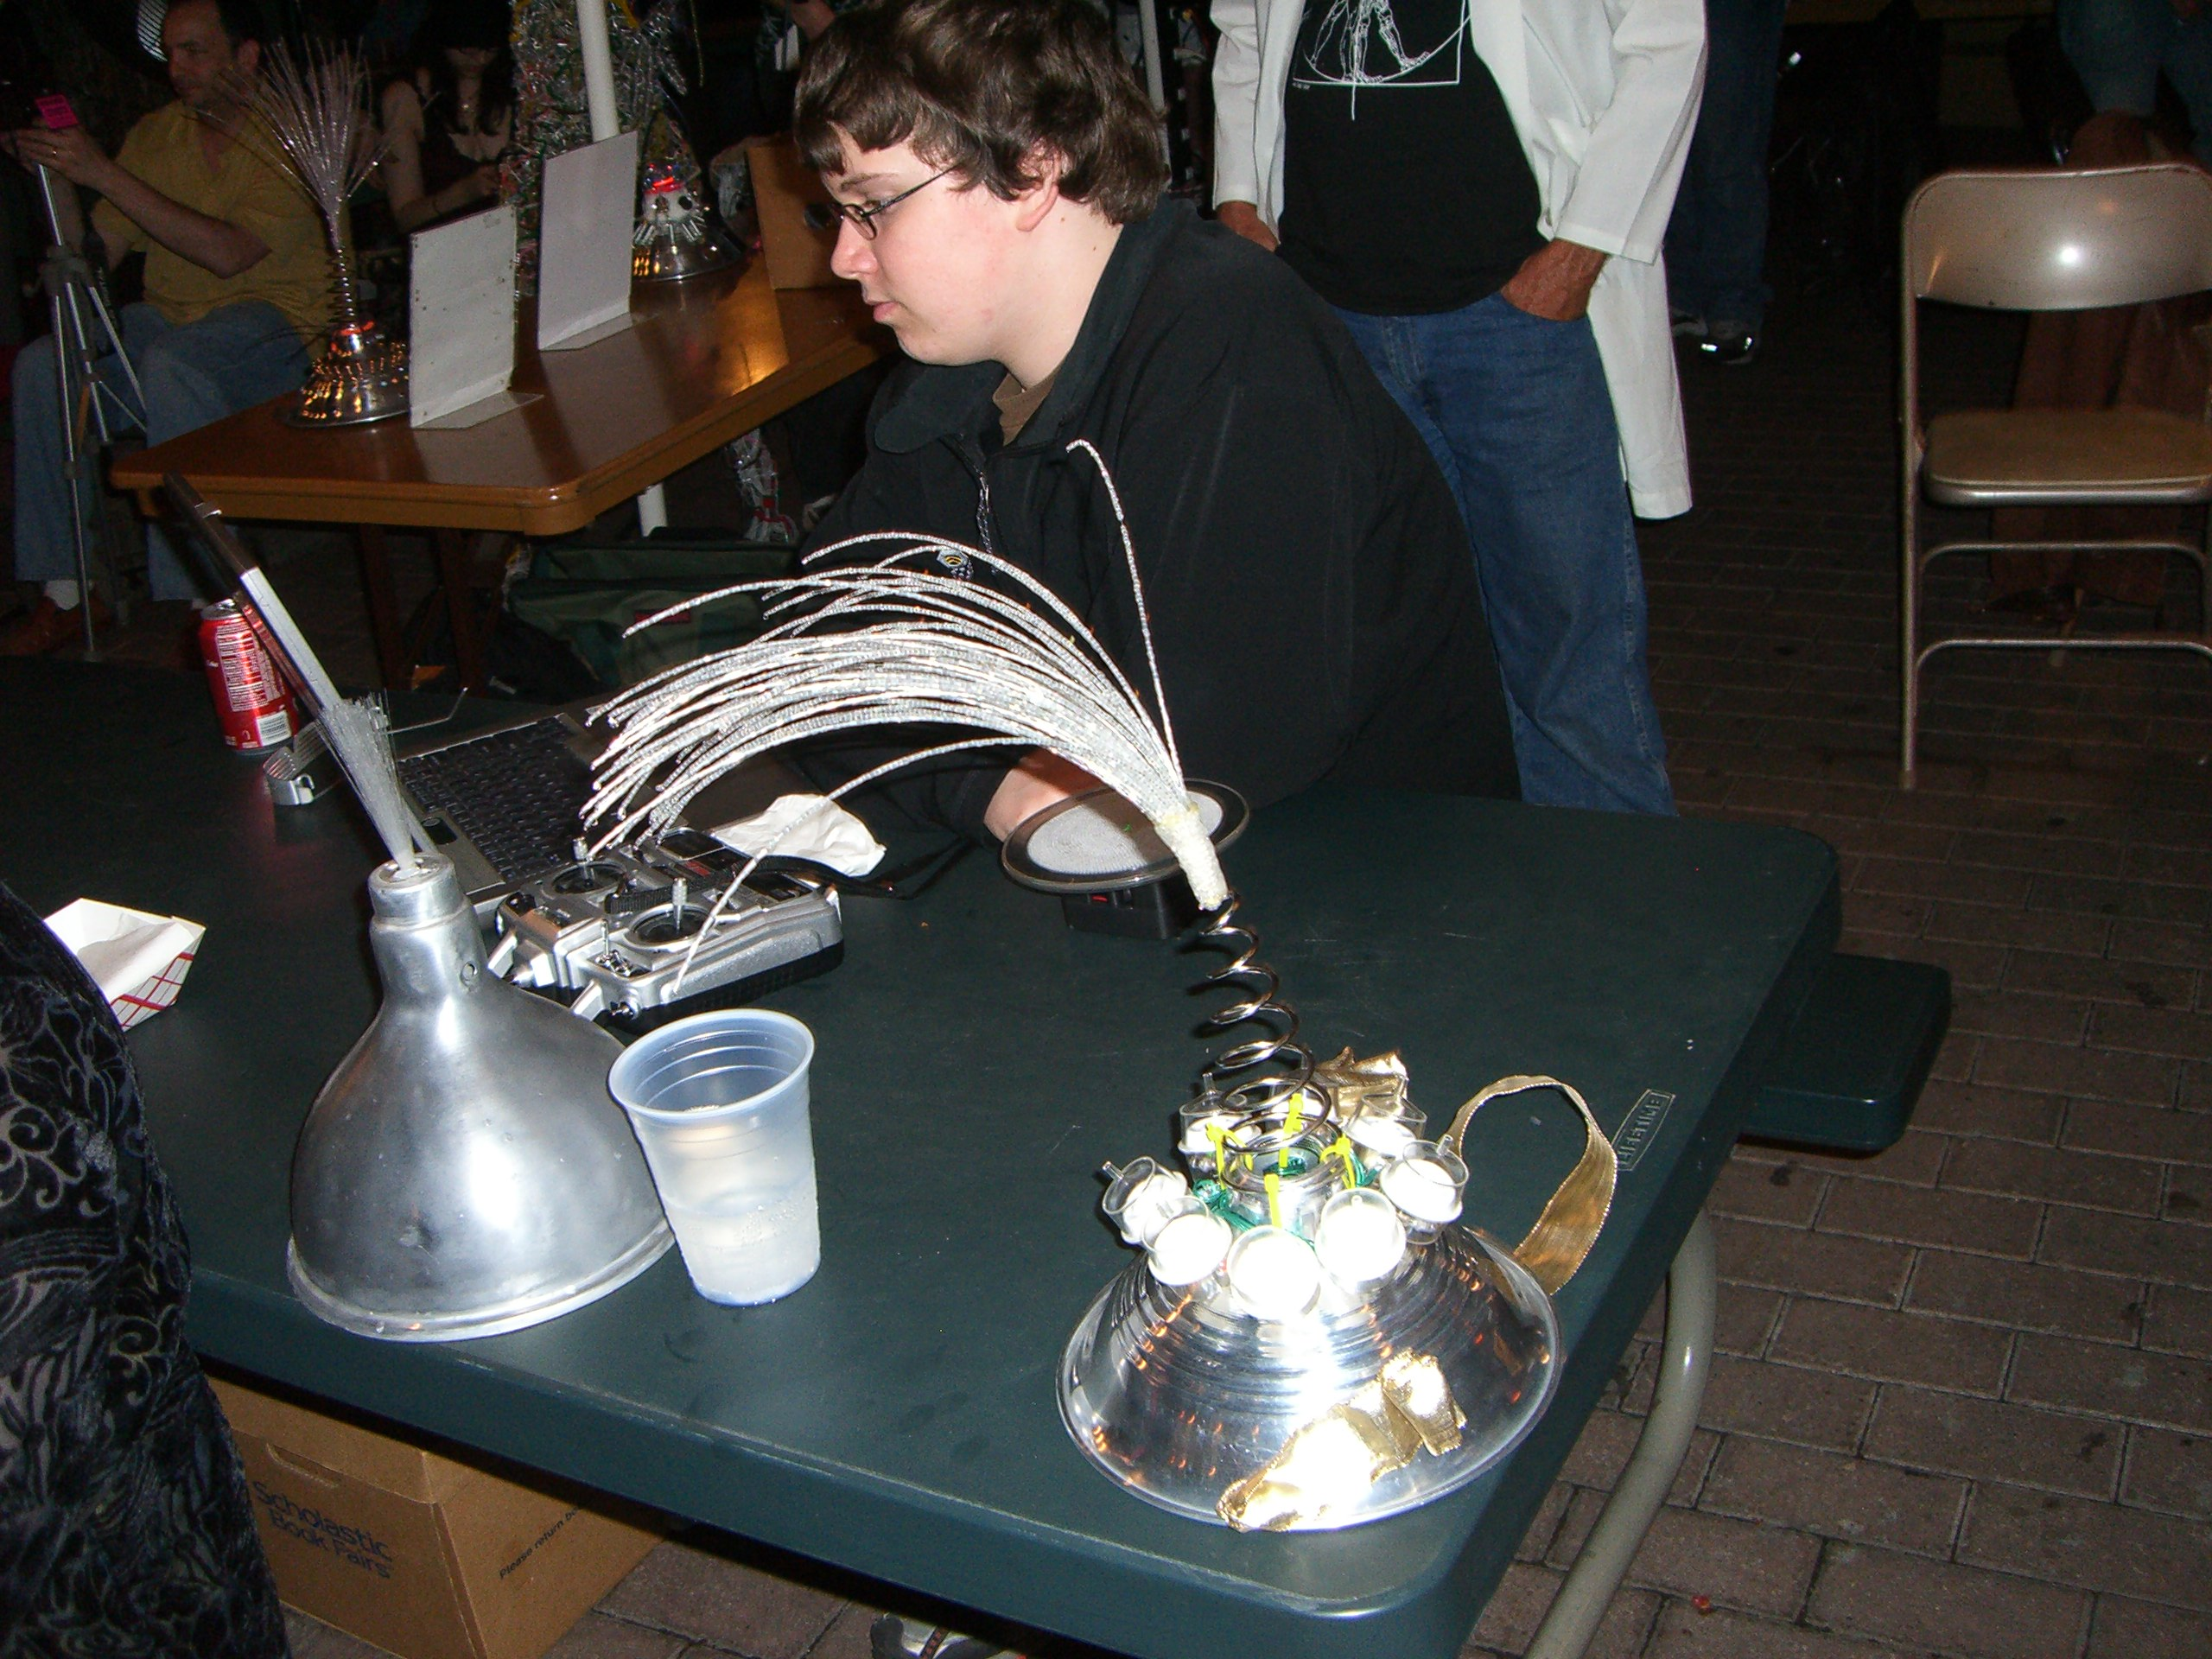 Robot Group table at the Steampunk party at SXSW 2007